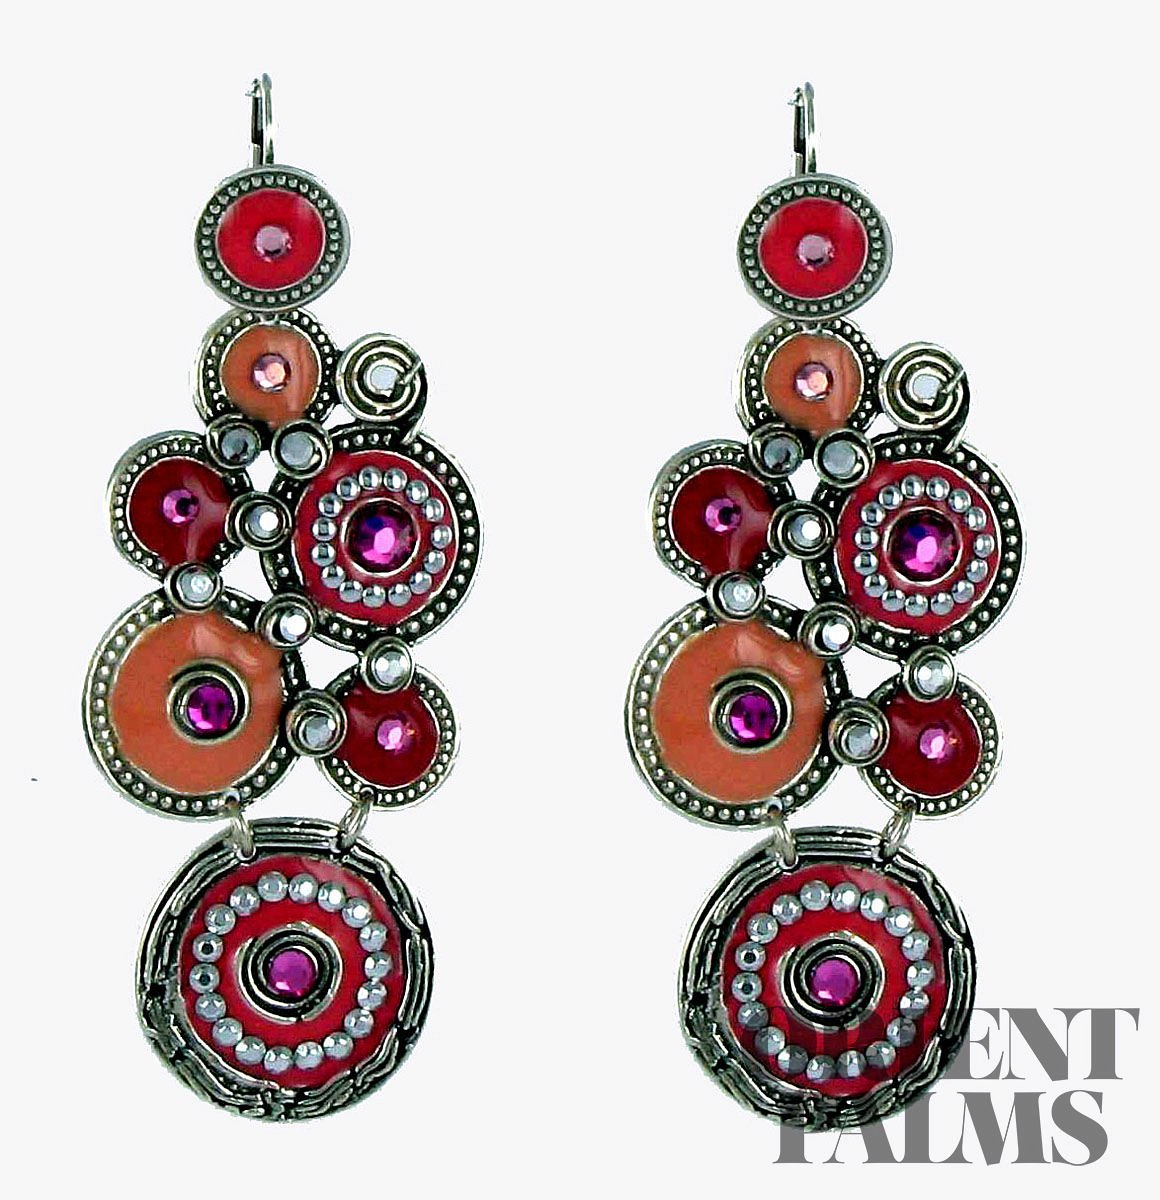 Gas Bijoux Earrings, F/W 2007-2008 - Accessories - 29